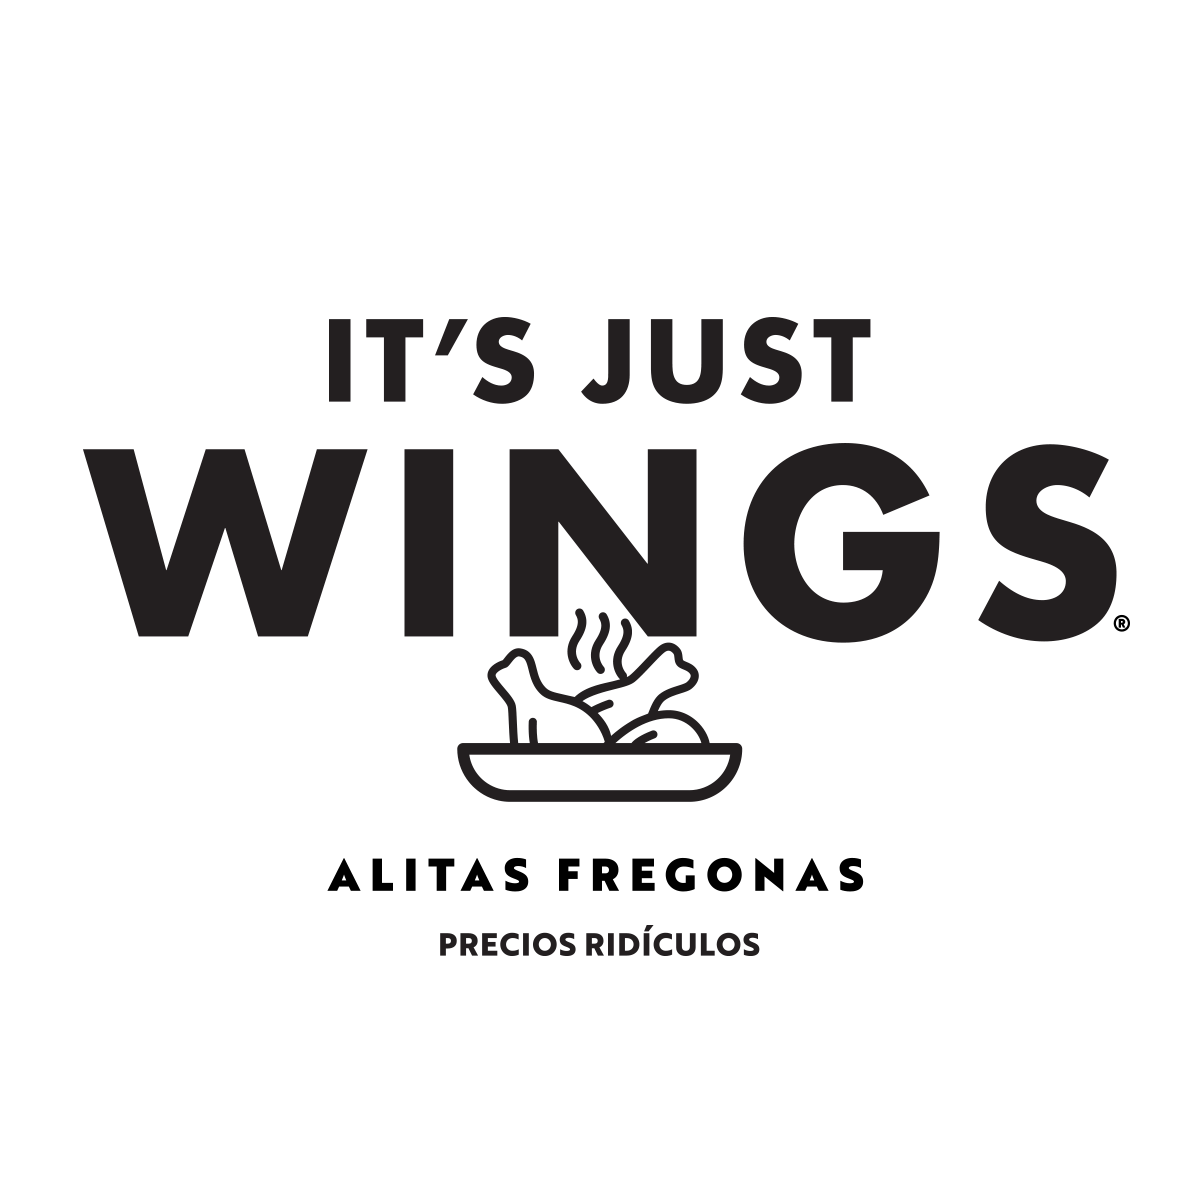 IT'S JUST WINGS